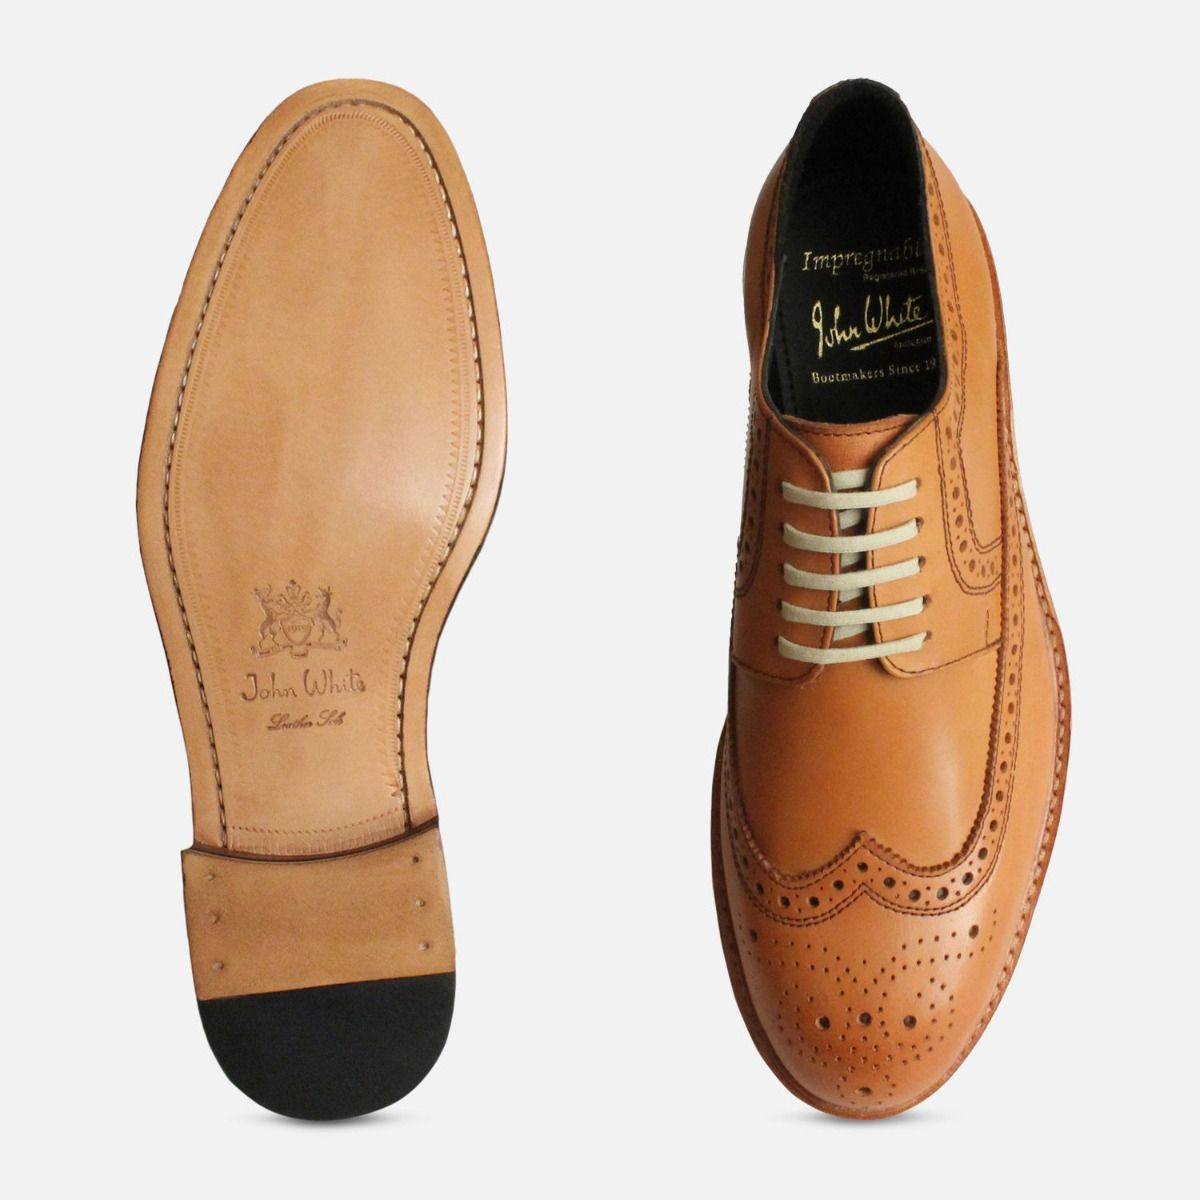 John White Goodyear Welted Wingtip Brogues in Tan